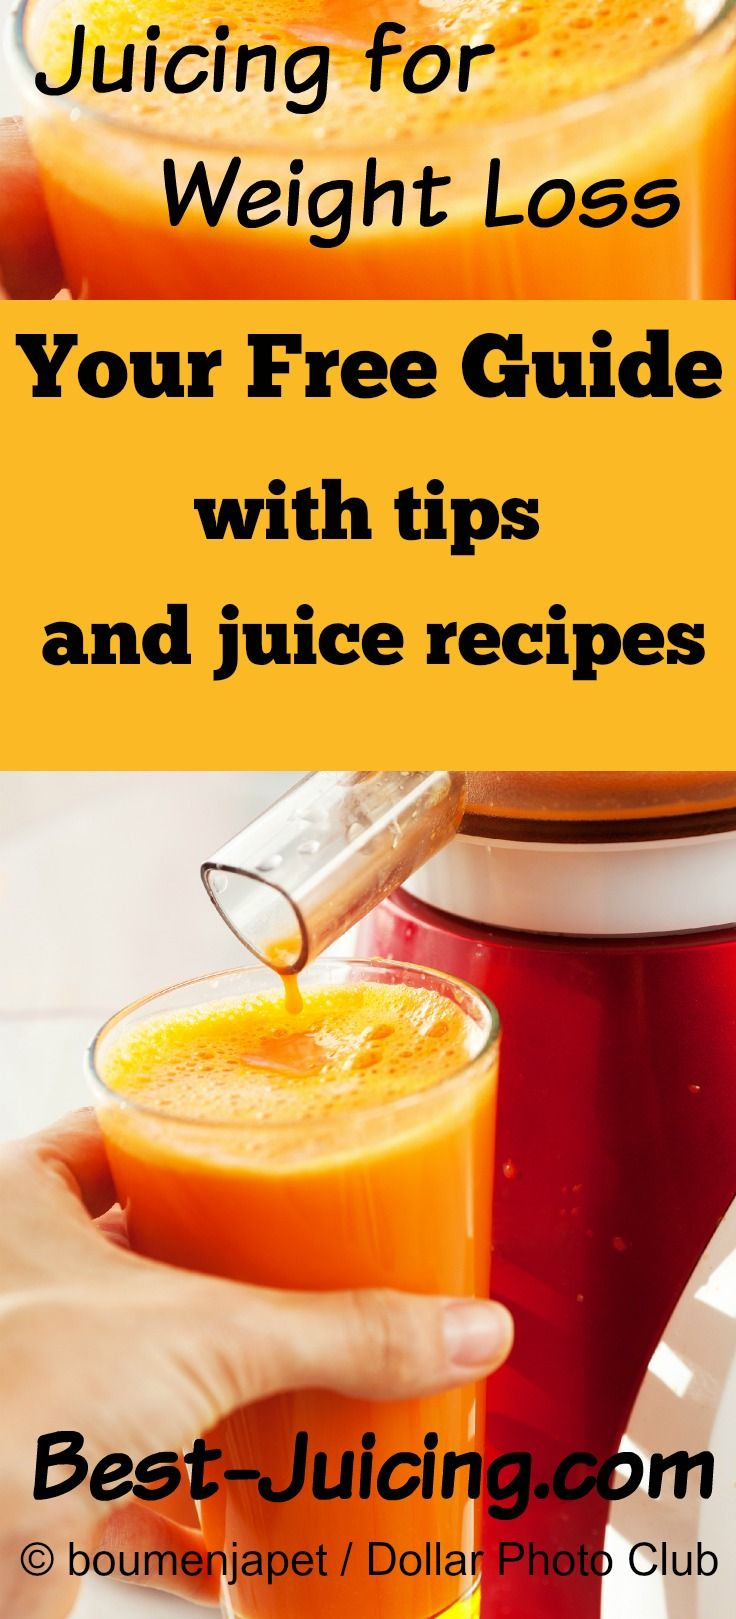 juice recipes to lose weight